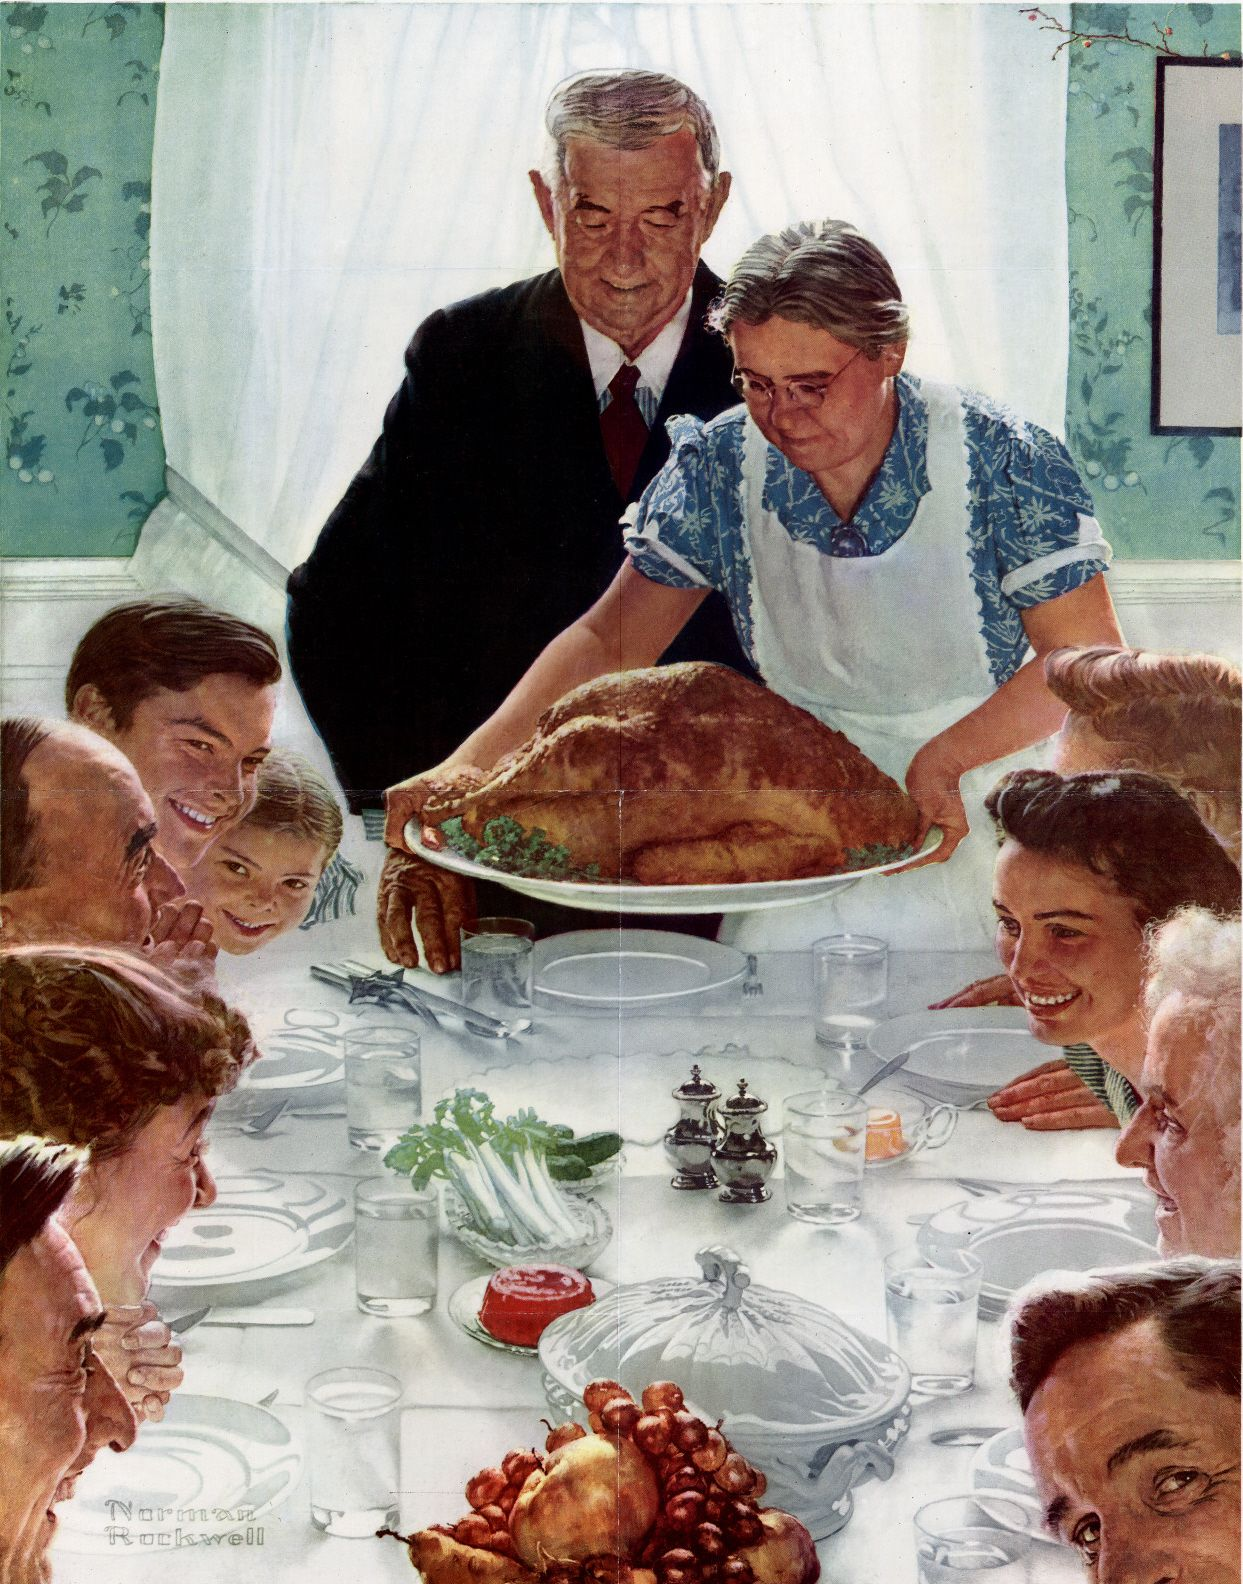 10 Reactions Everyone has on Thanksgiving | Modern philosophers